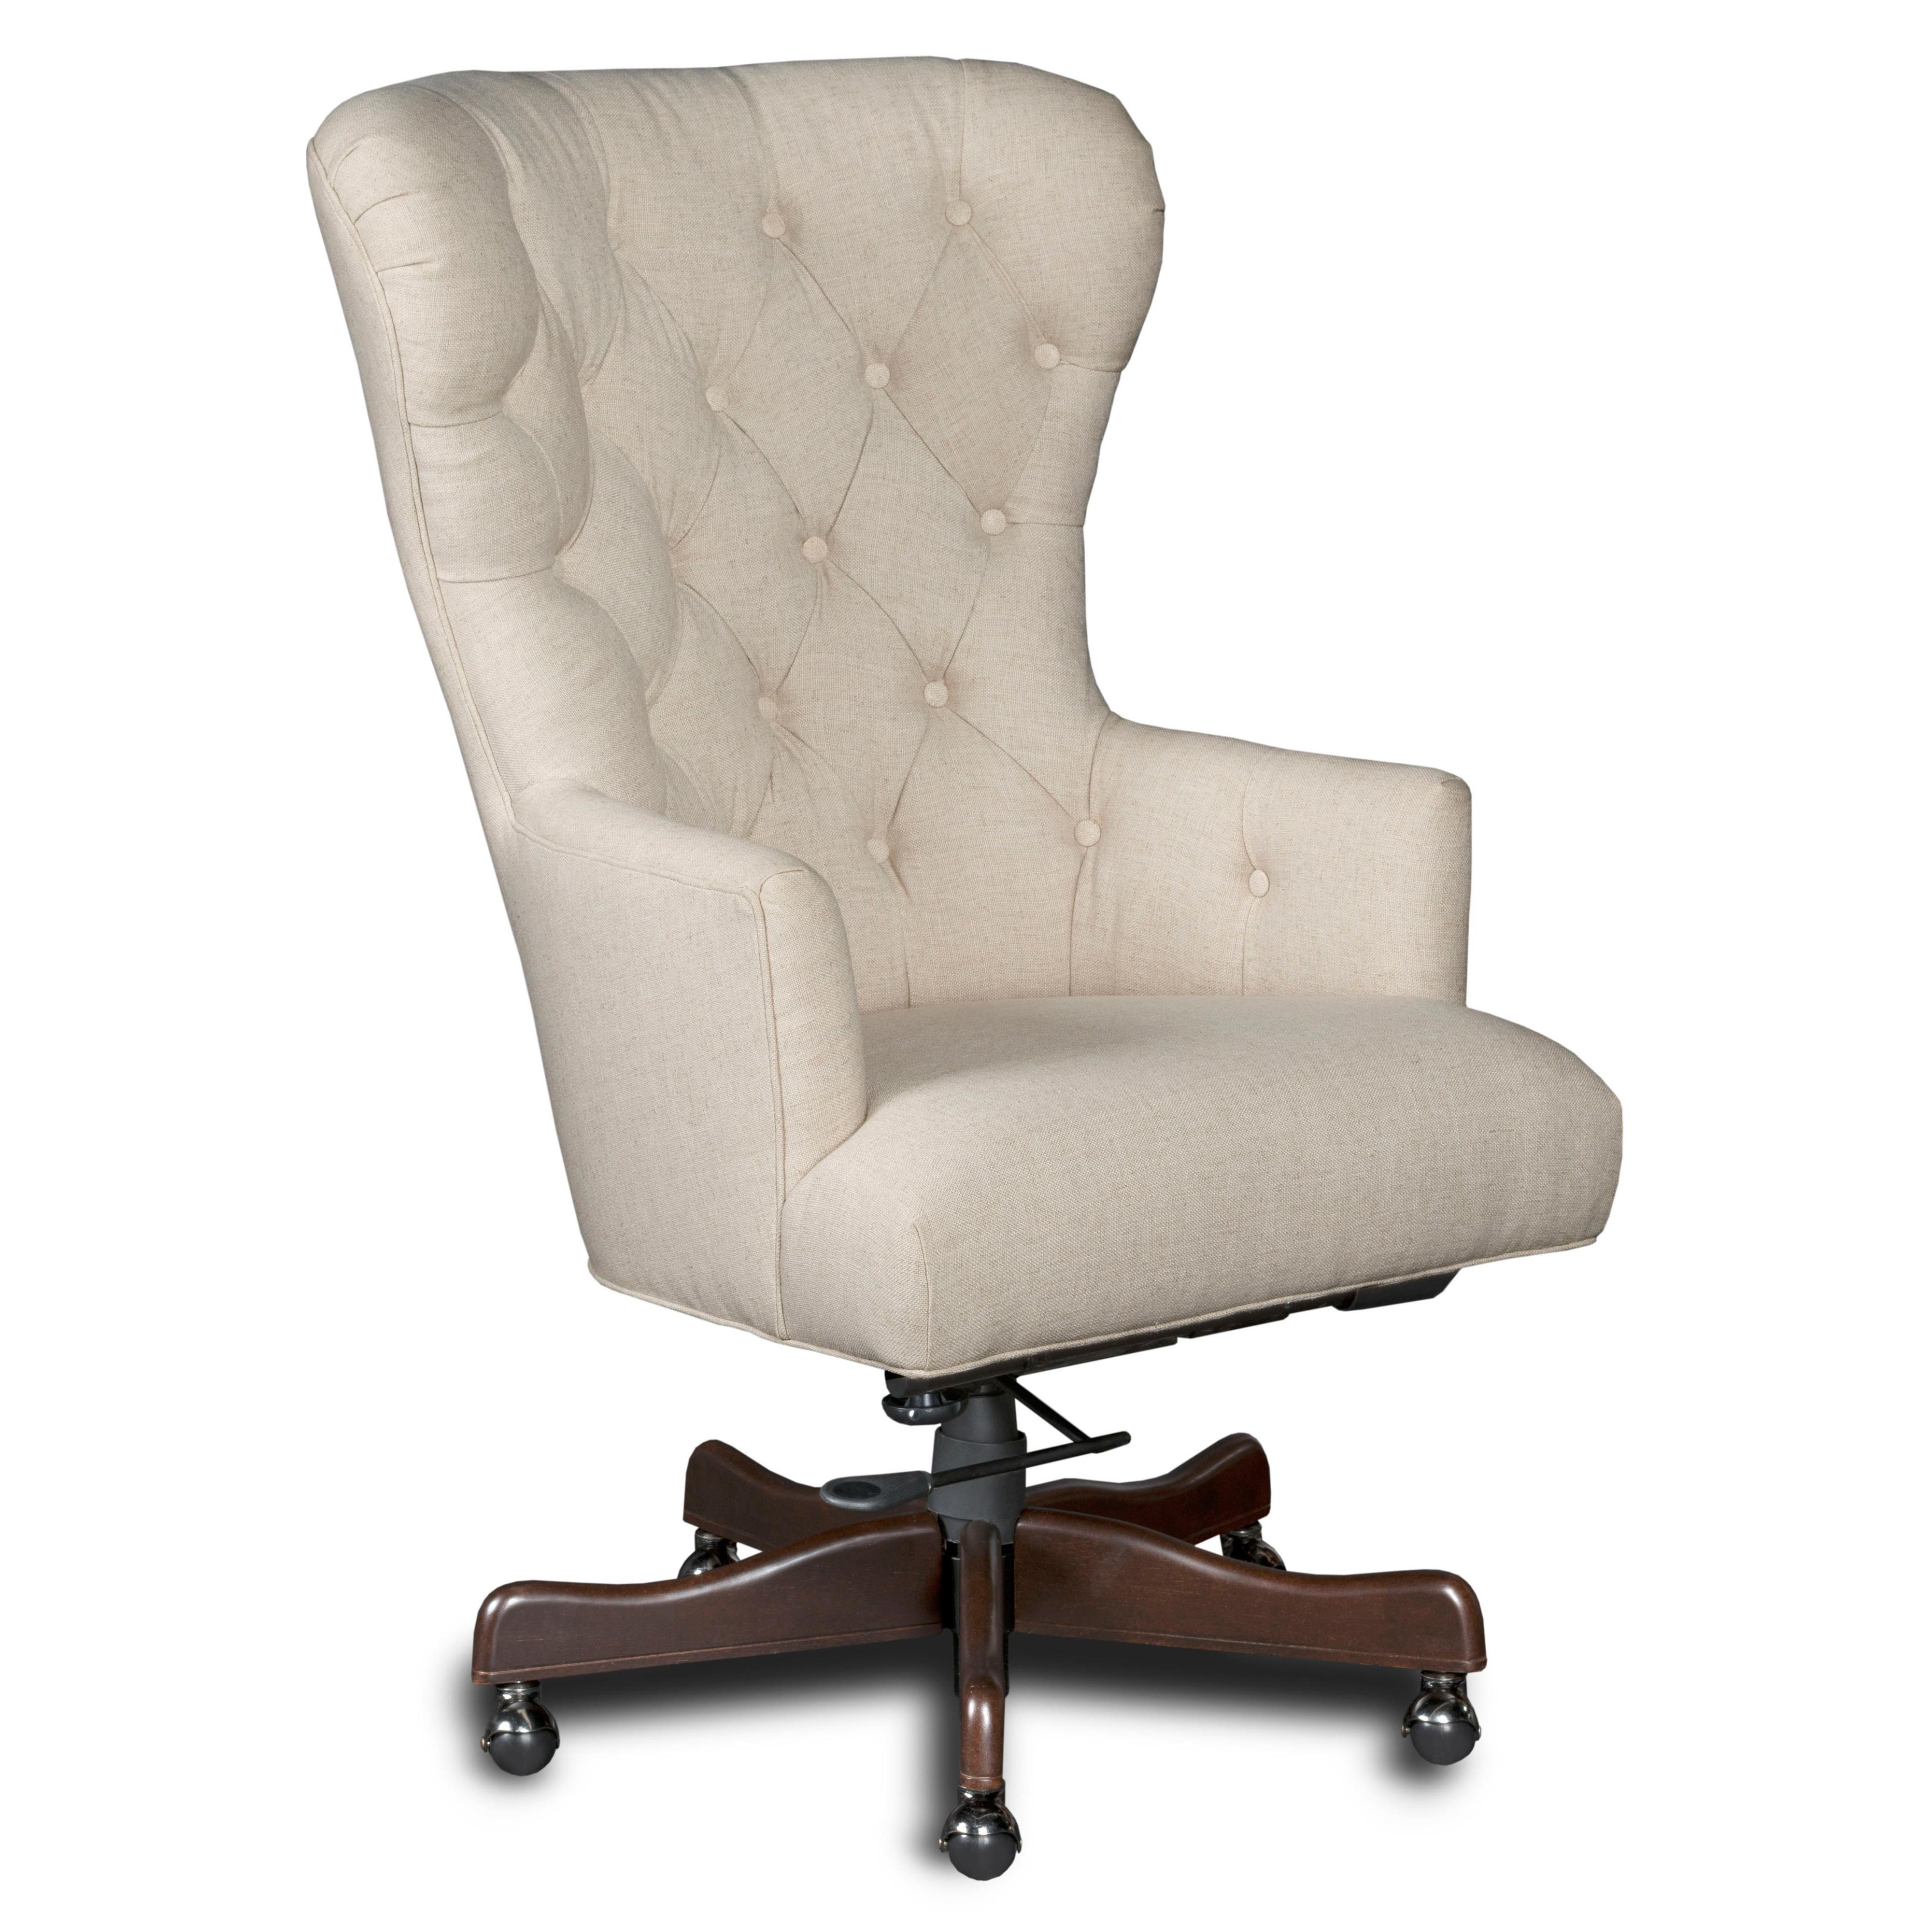 Executive Seating Larkin Oat Home Office Chair by Hooker Furniture at Baer's Furniture